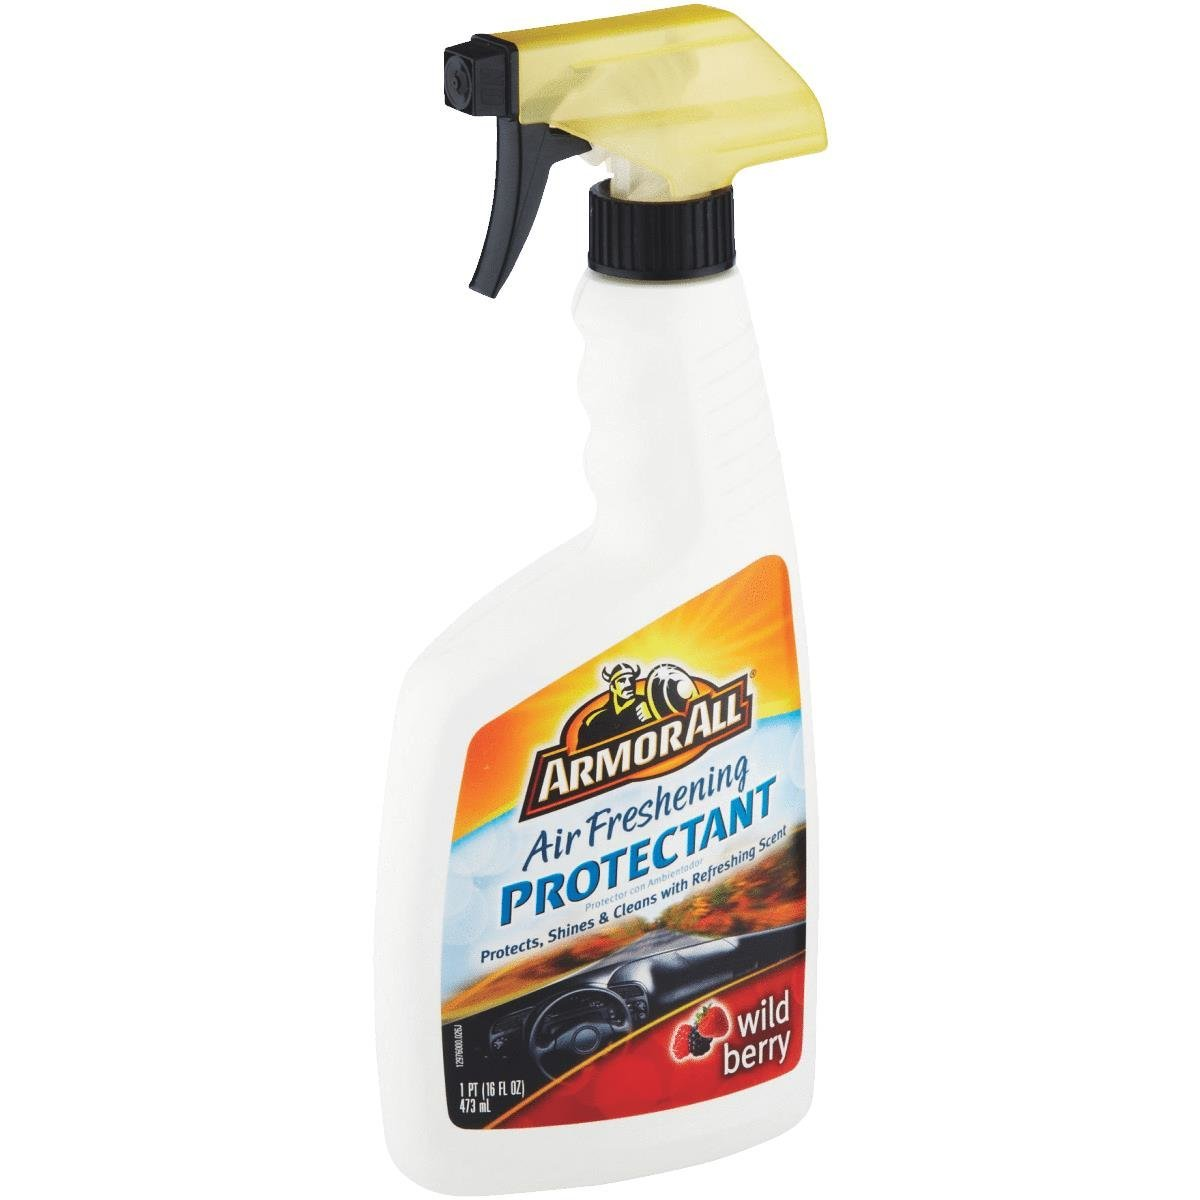 Armorall Air Freshening Protectant  Wild Berry